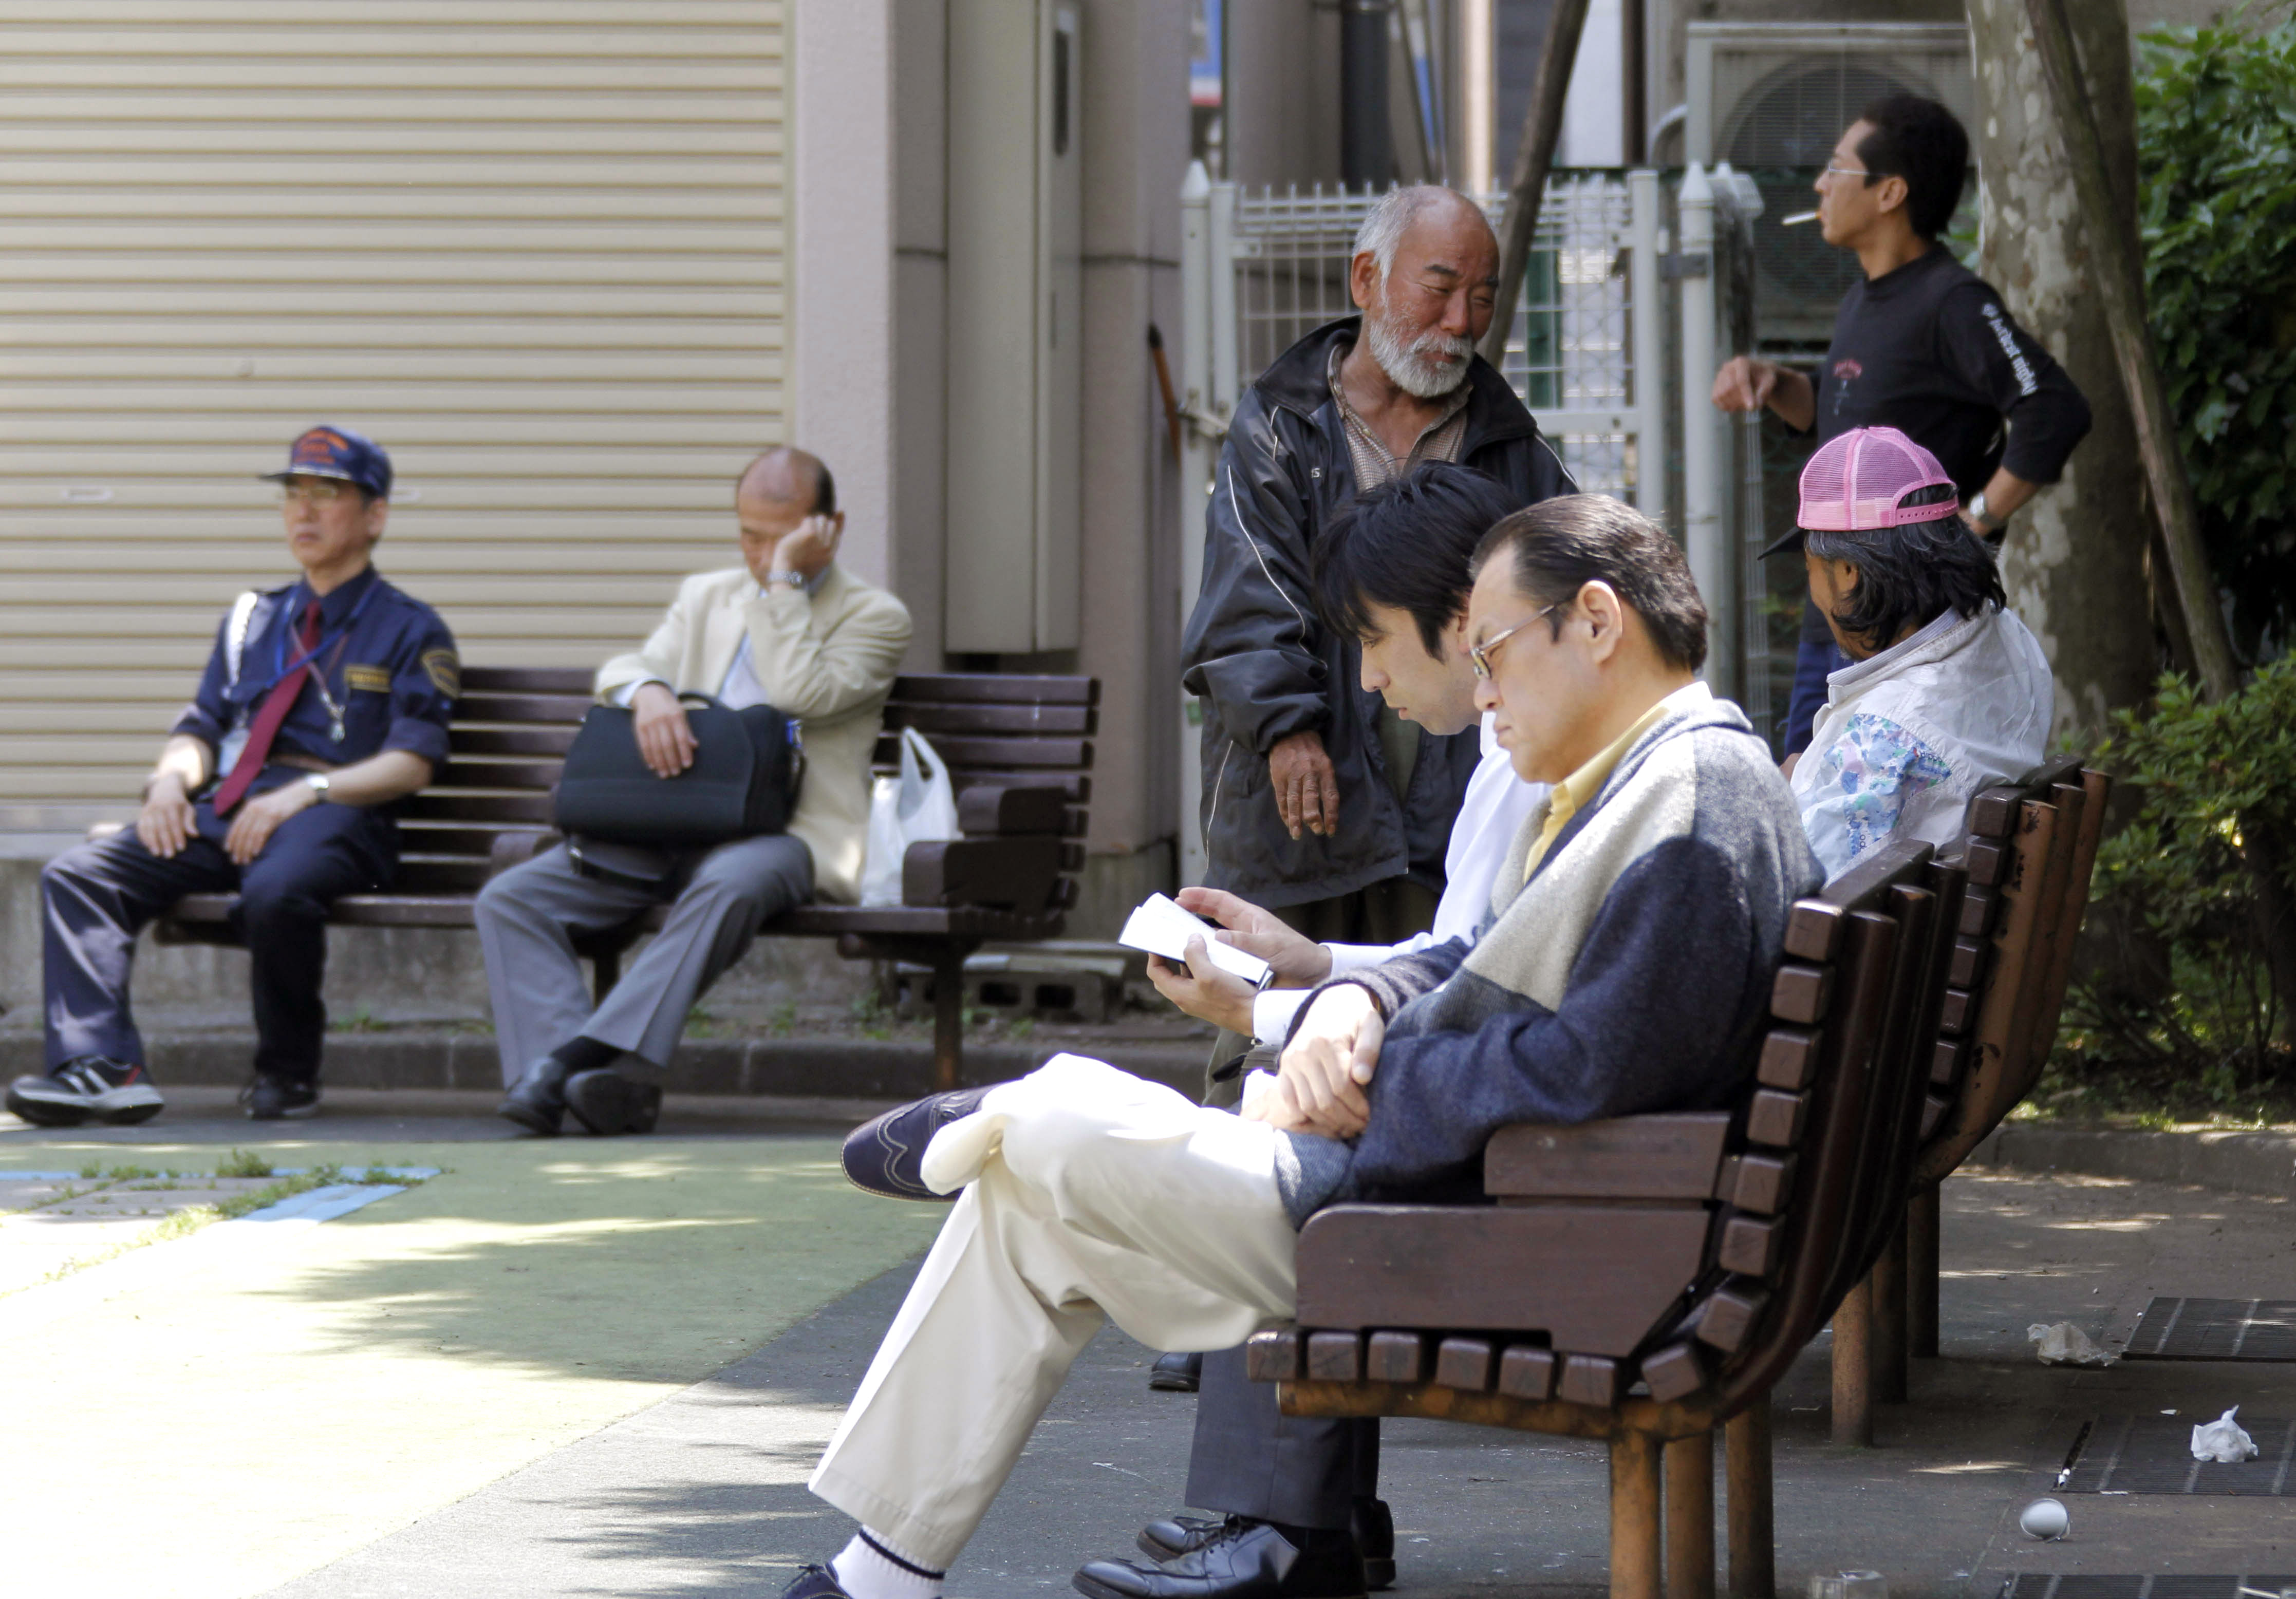 People spend time at a park during midday hours in Tokyo, Japan yesterday. Unemployment rose for the third straight month in April, prices kept slidin...